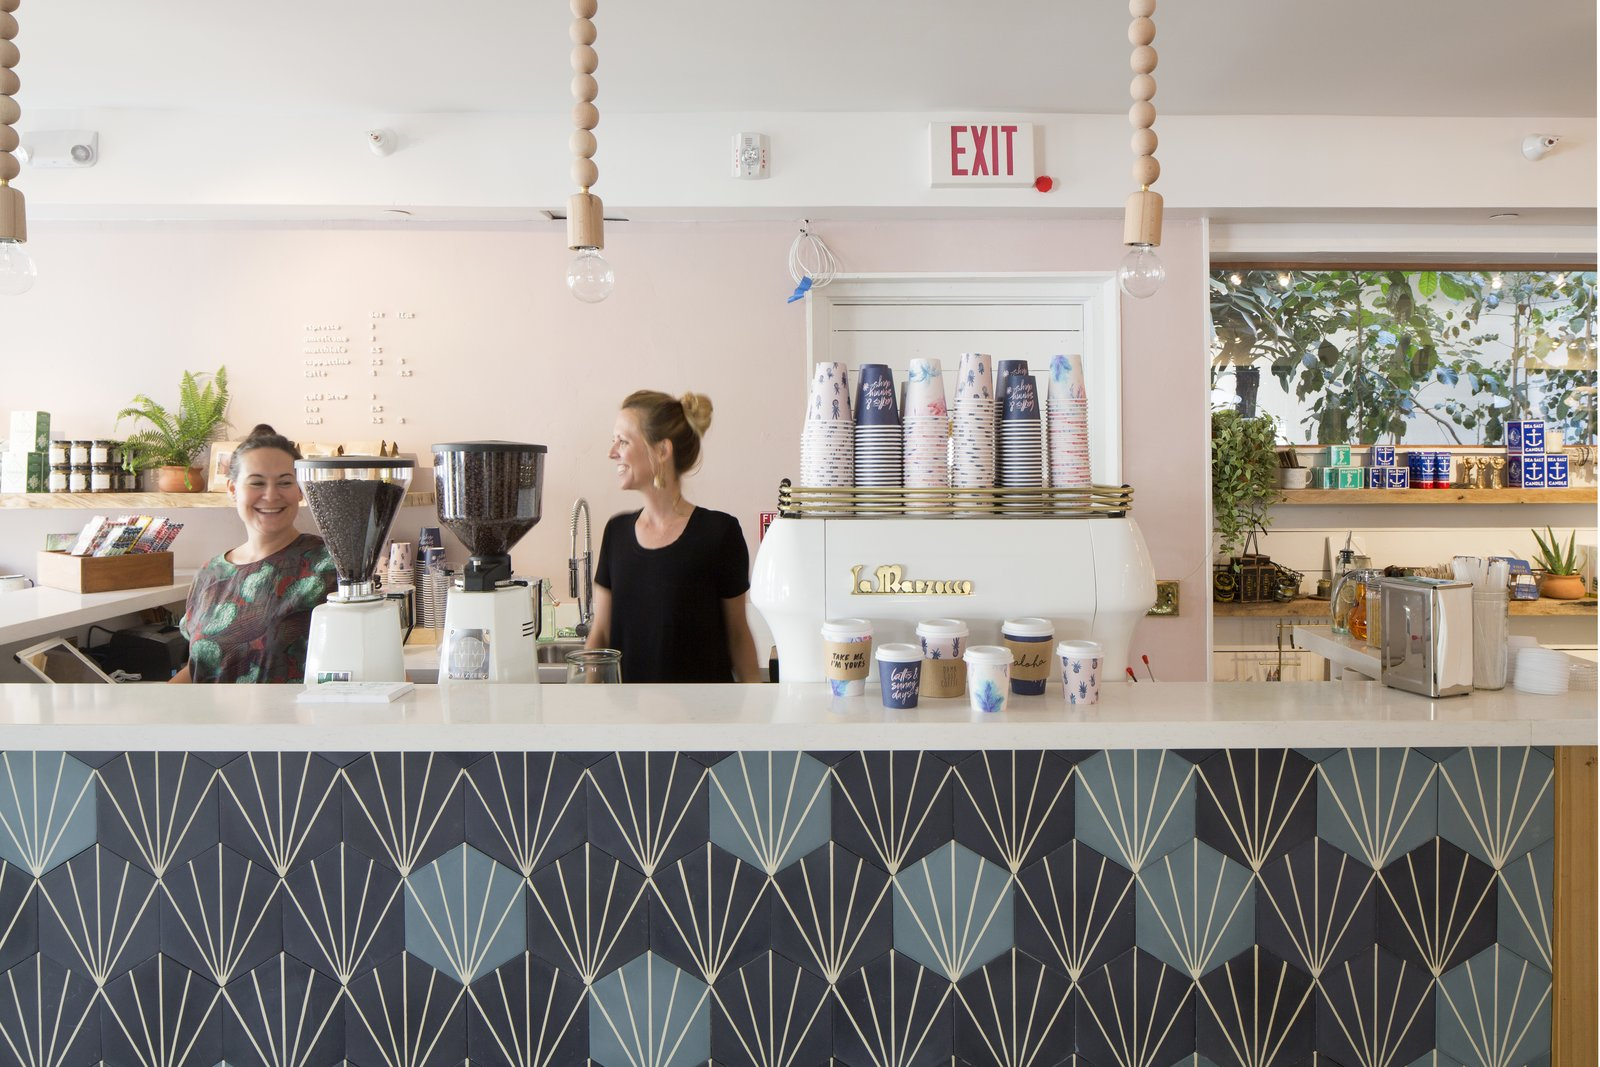 Immediately when you walk in, Olive & Oliver catches your eye on the left. Founded by husband-and-wife team, Ali McMahon and Parker Moosman, the boutique that accompanies the coffee shop boasts a curated collection of fashion and home goods that are inspired by iconic surf culture. This Surf-Inspired Hotel Celebrates Waikiki's Creative Spirit and its Midcentury Roots - Photo 10 of 14